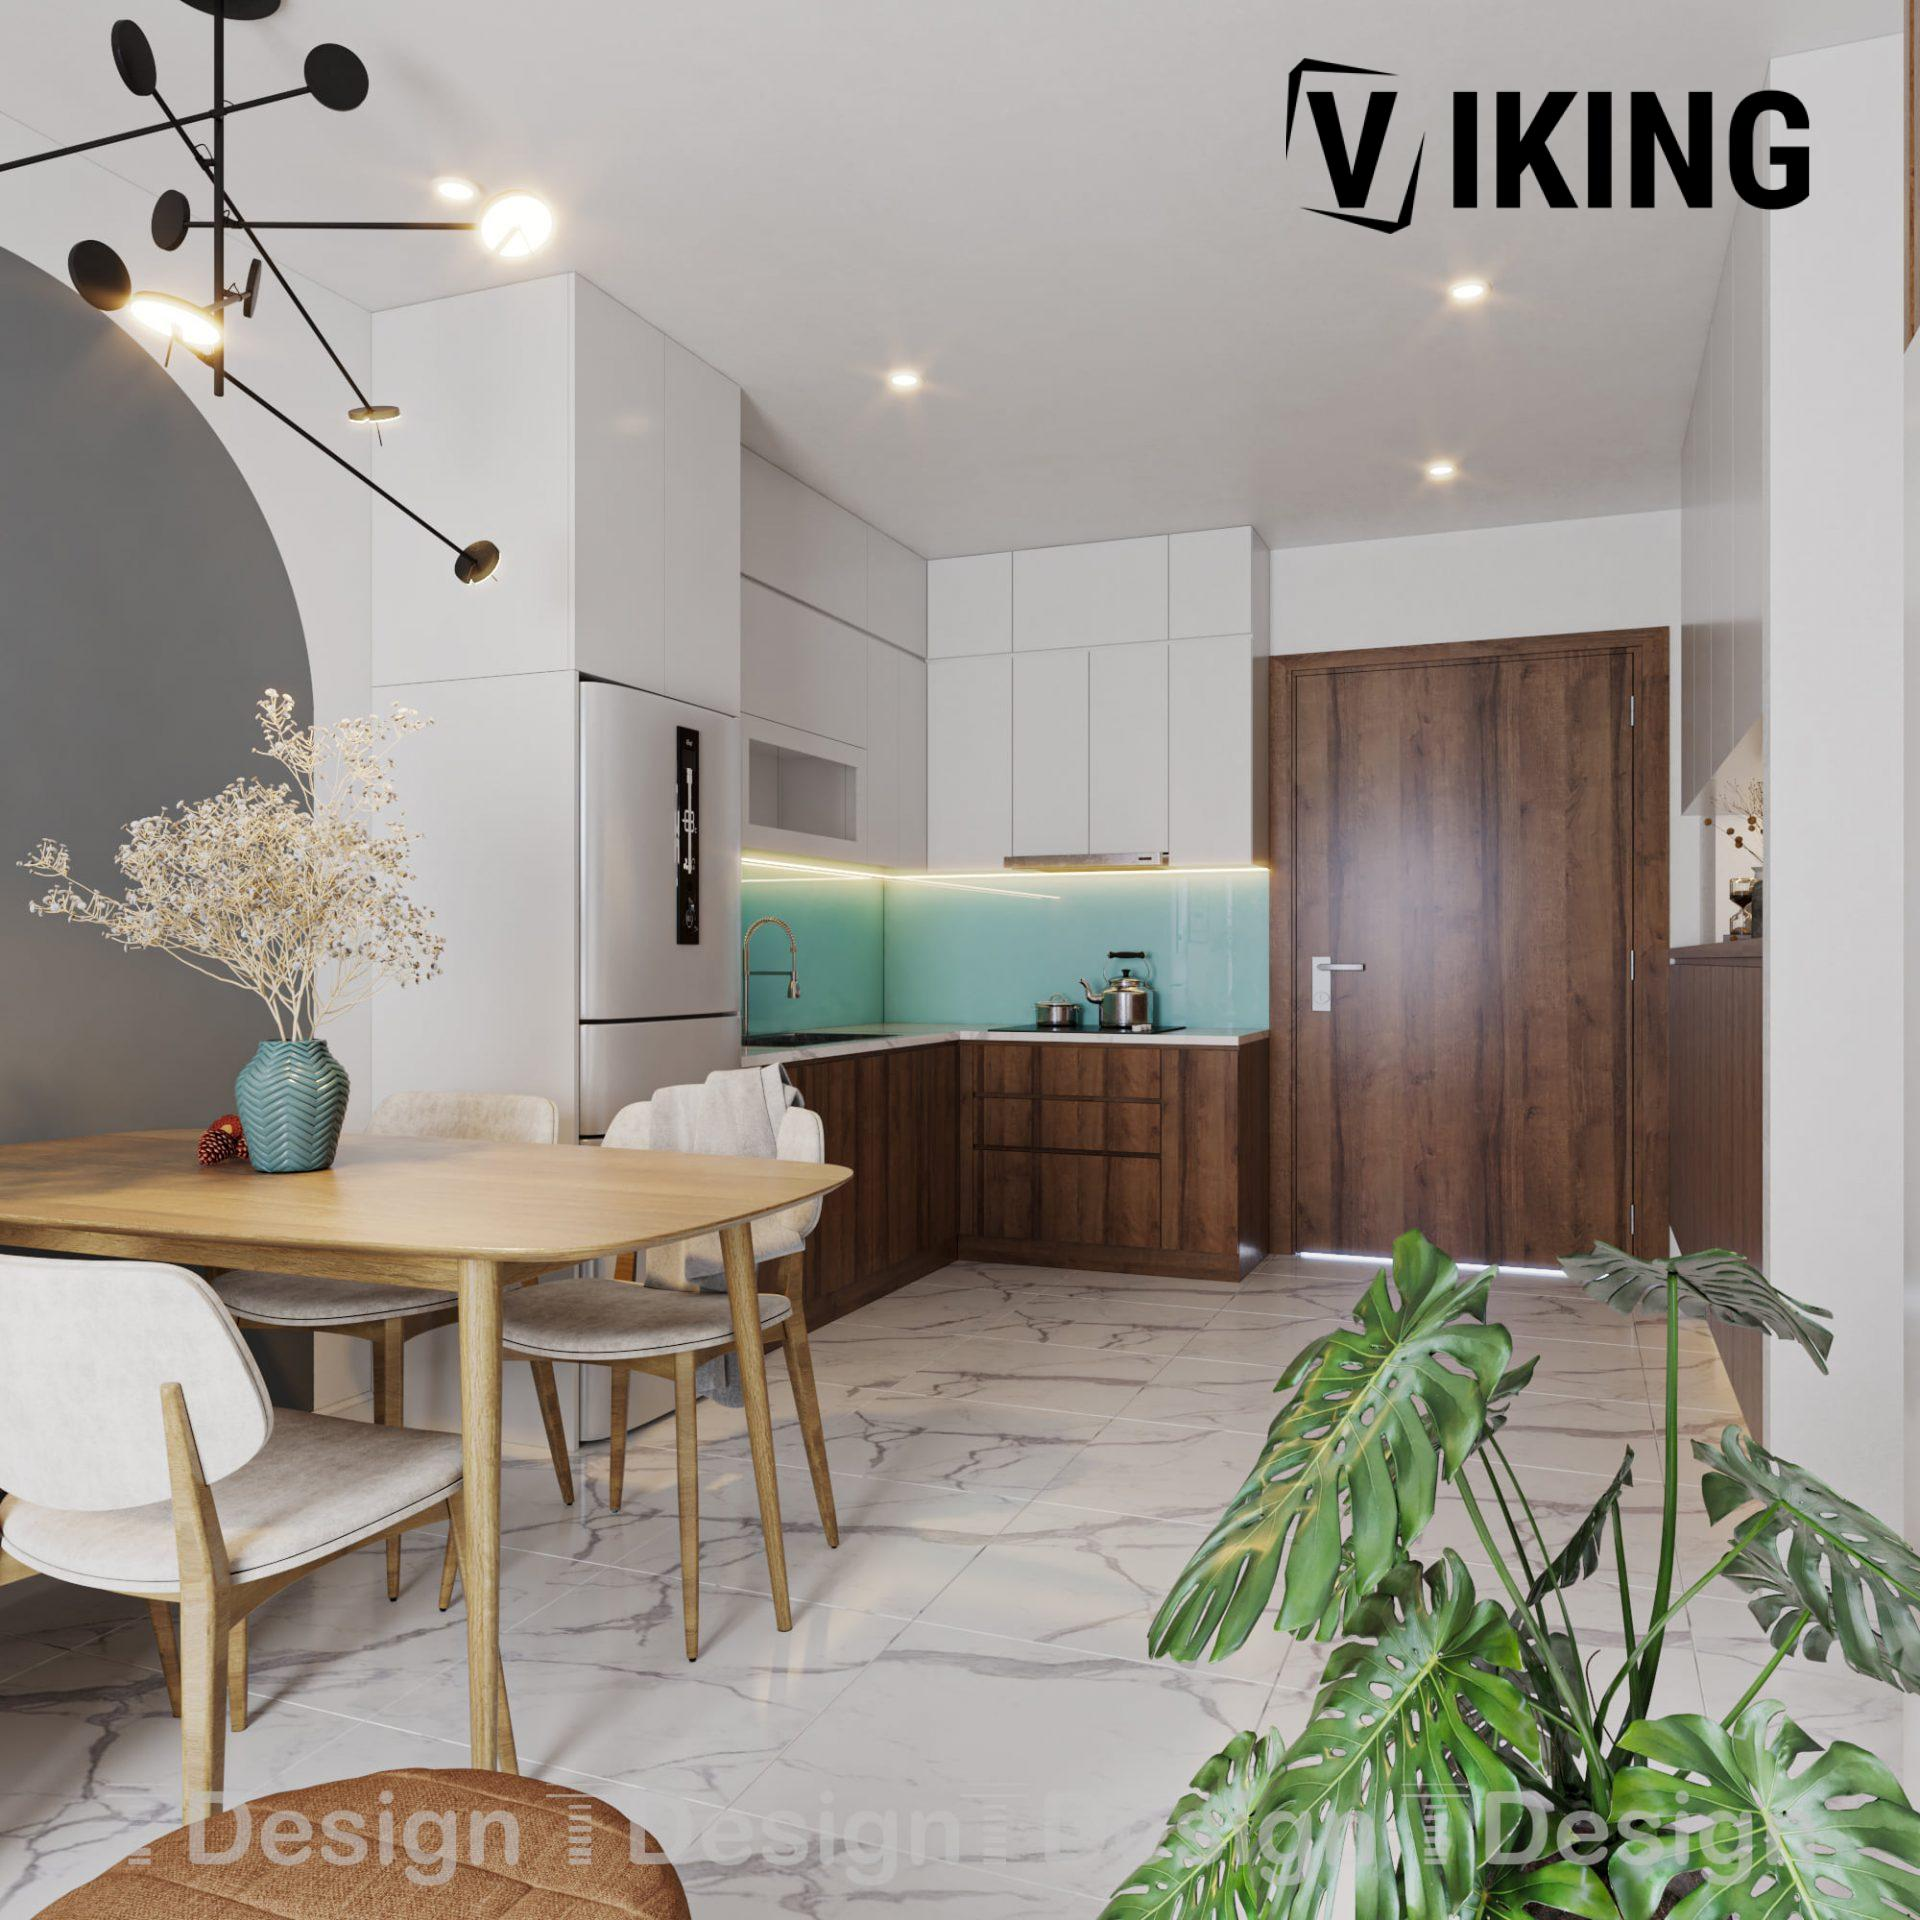 4534.Living Kitchenroom Scene Sketchup File free download by Trong Thanh 2